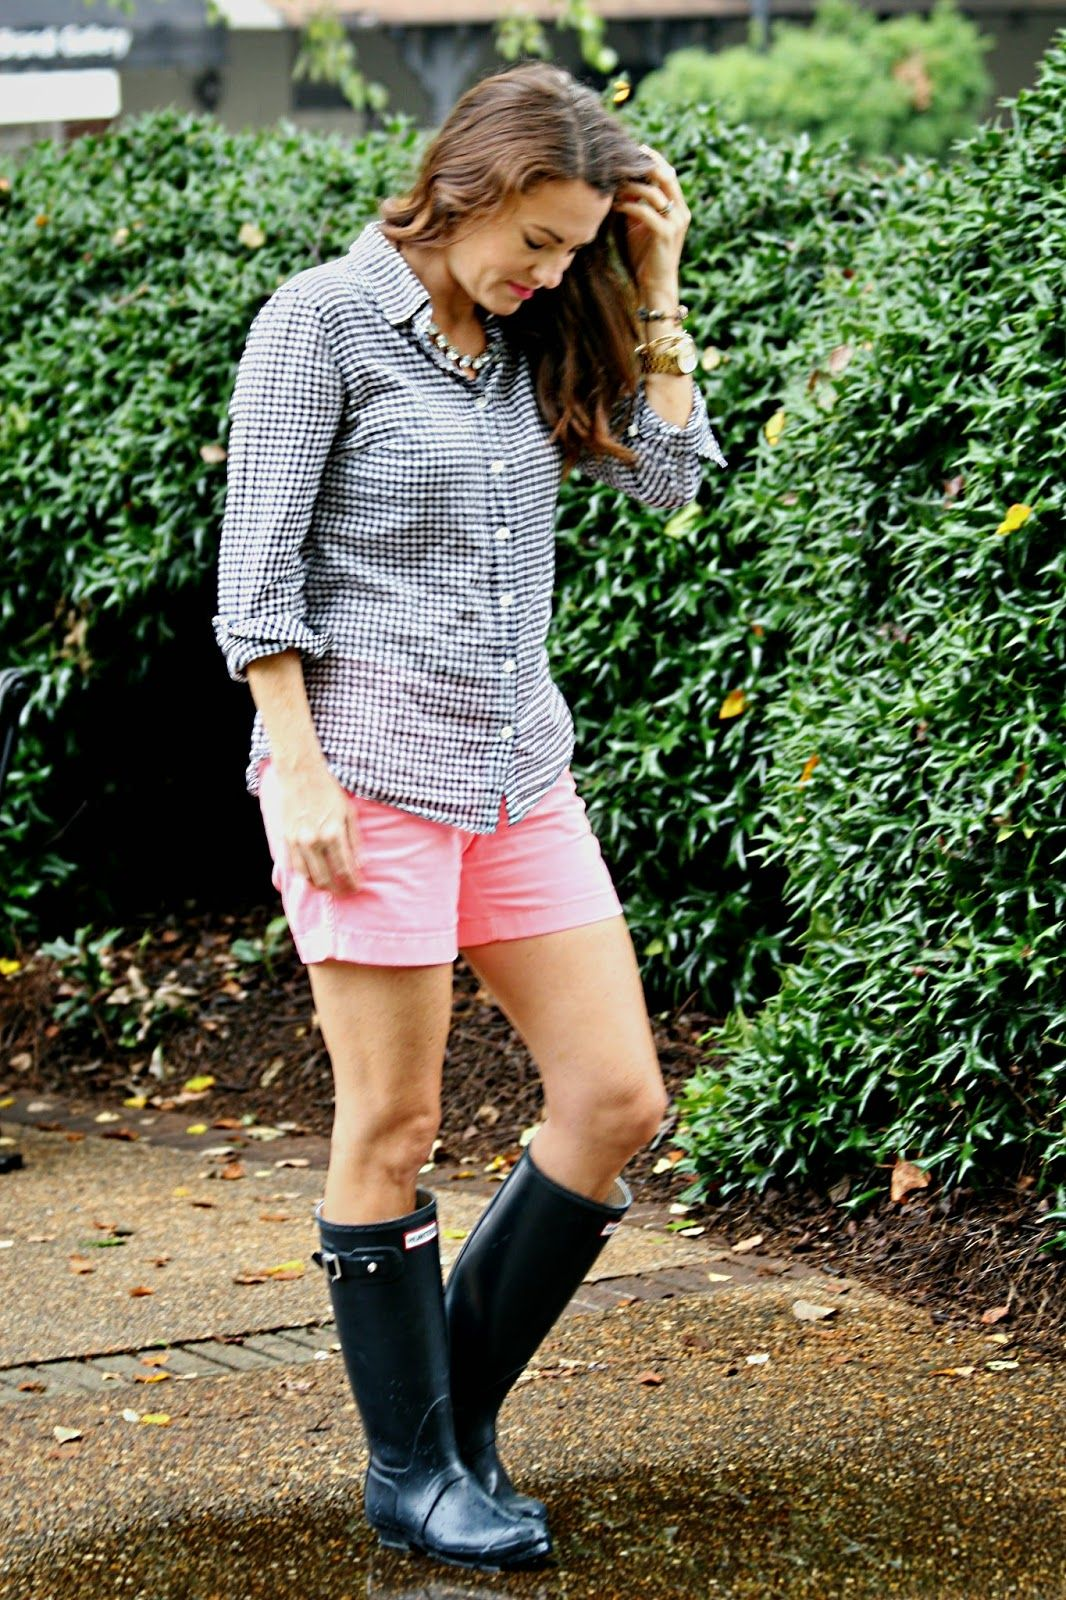 Buy How to rain wear boots with shorts pictures trends